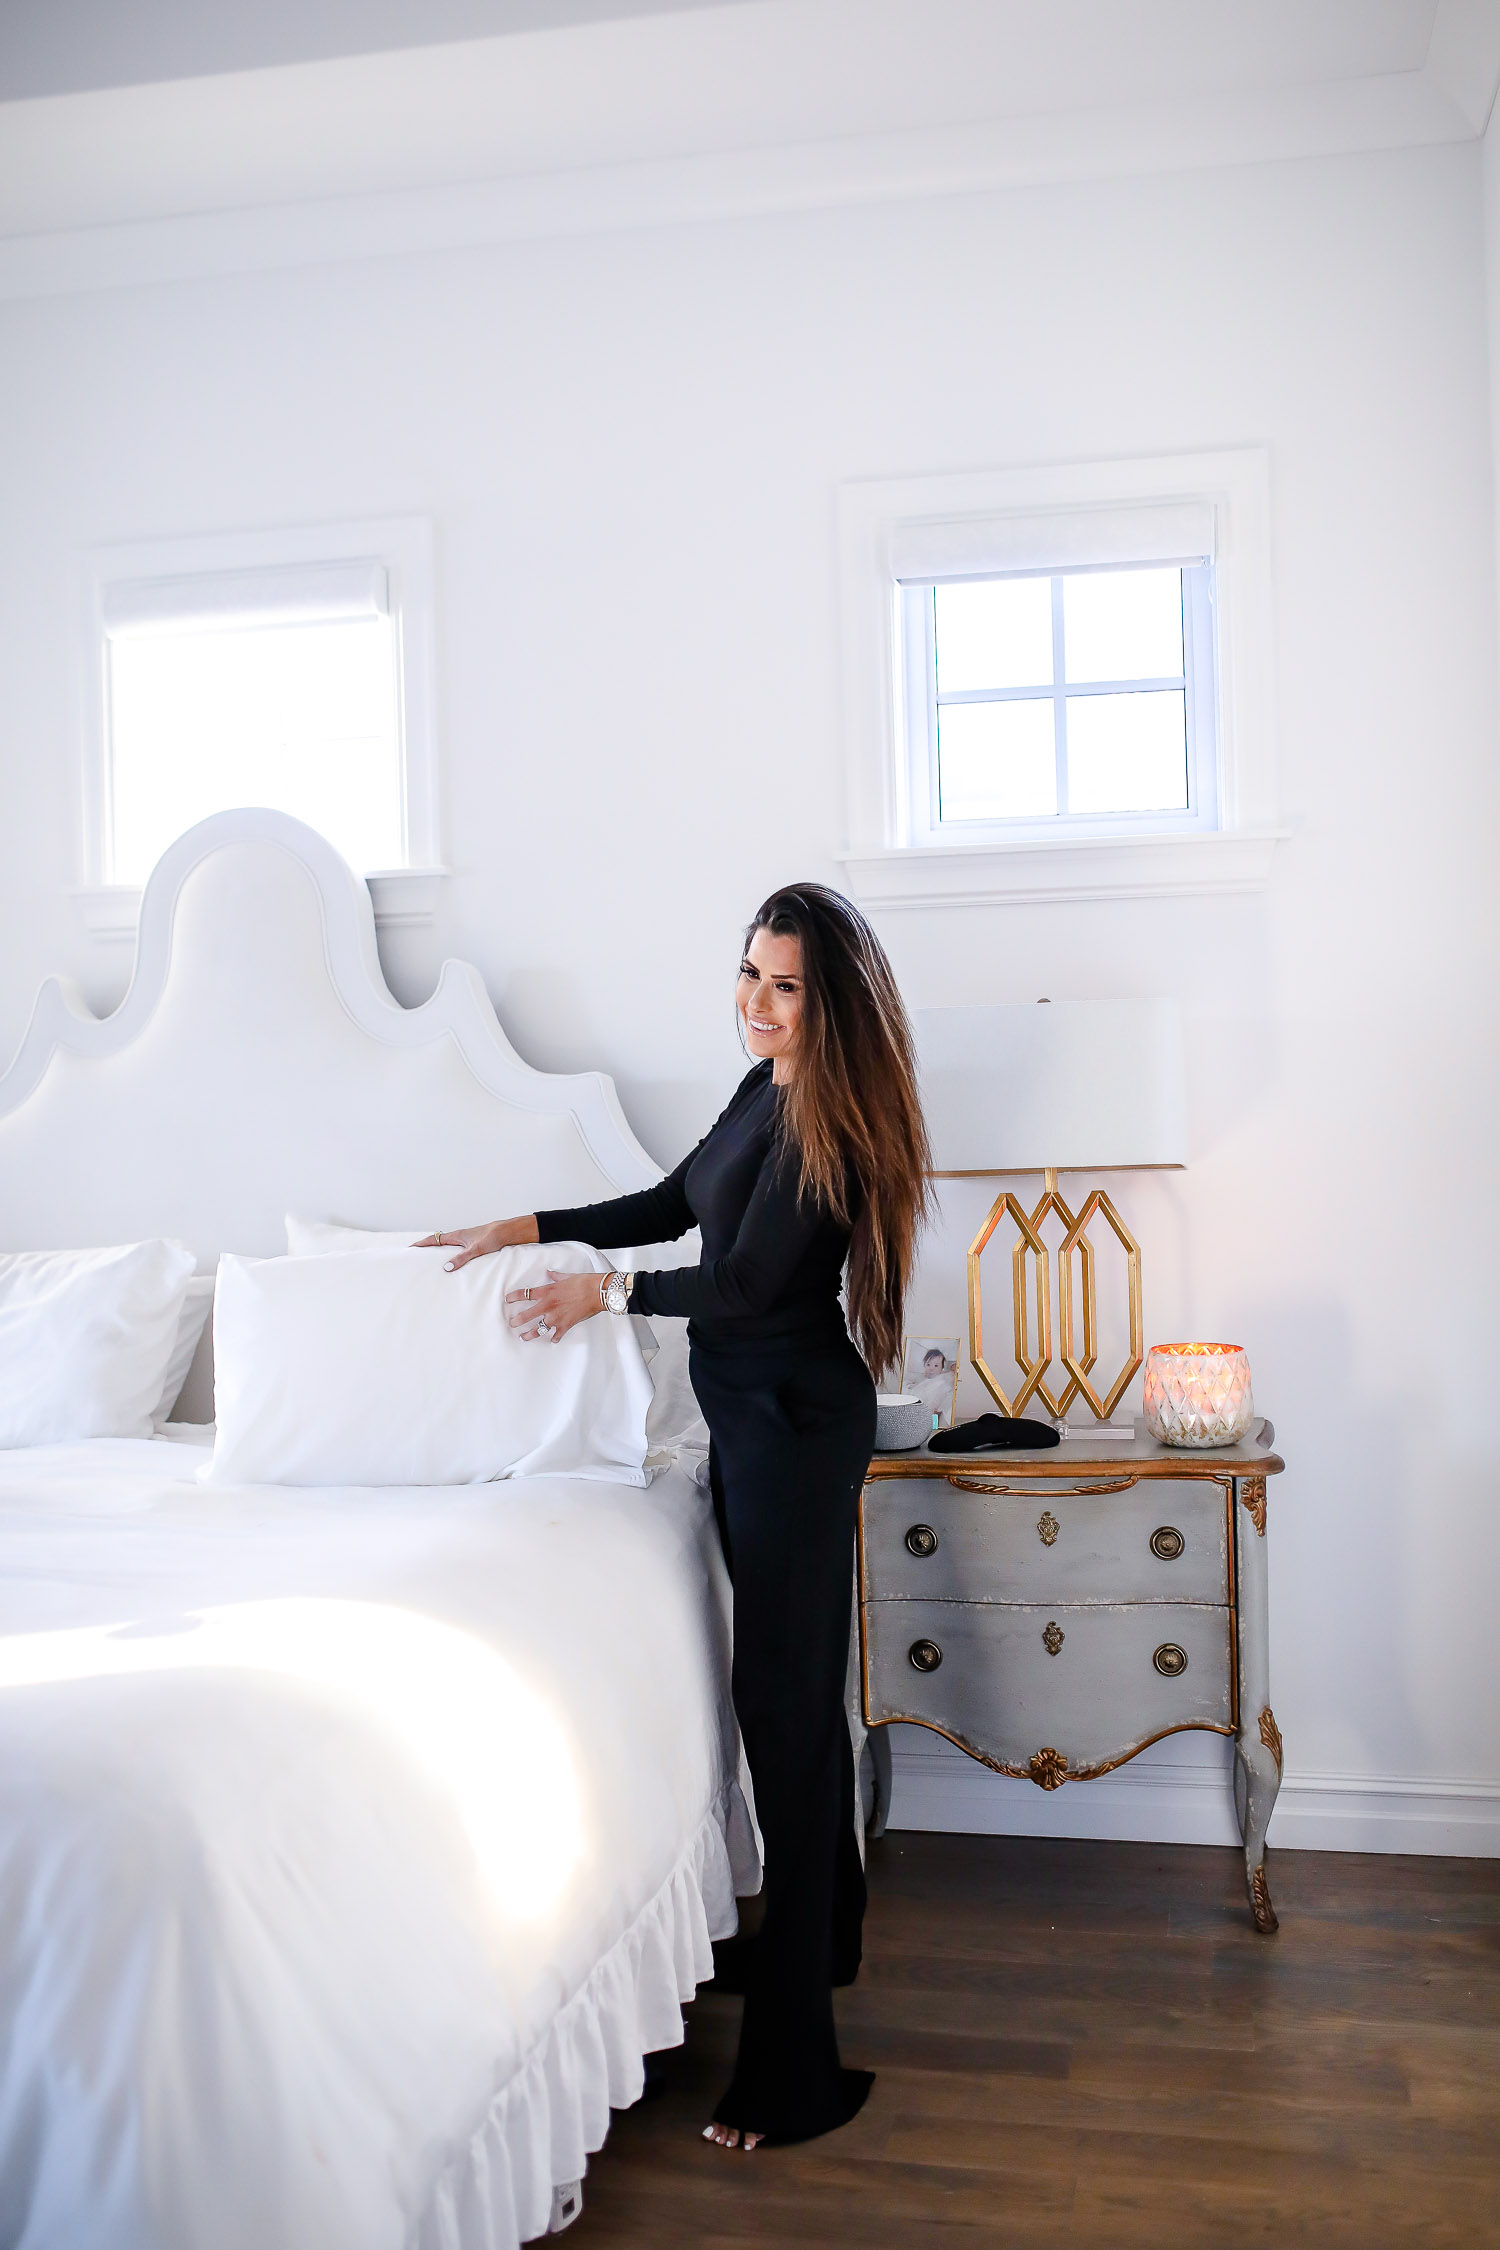 verishop, verishop review, pinterest master bedroom inspo, emily gemma, hooker furniture nightstands-2 | Cozy Essentials by popular US fashion blog, The Sweetest Thing: image of a woman standing by her bed and wearing a Verishop LETT Montreal Rib Top and Verishop LETT Heathrow Wide Leg Pant.